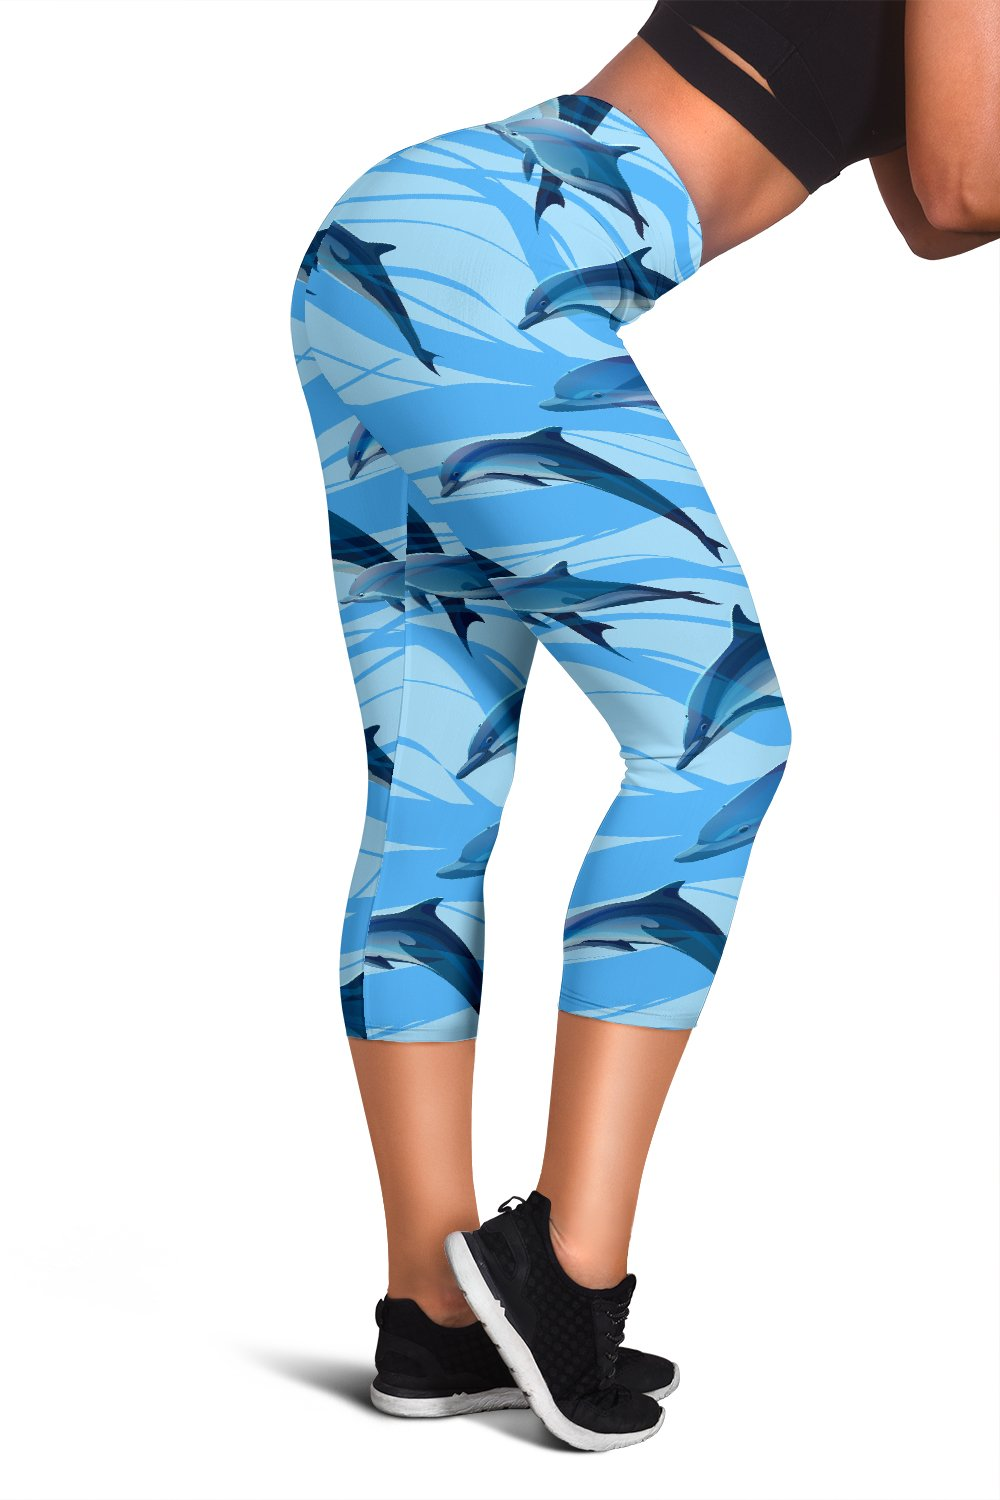 Blue Dolphin Women Capris